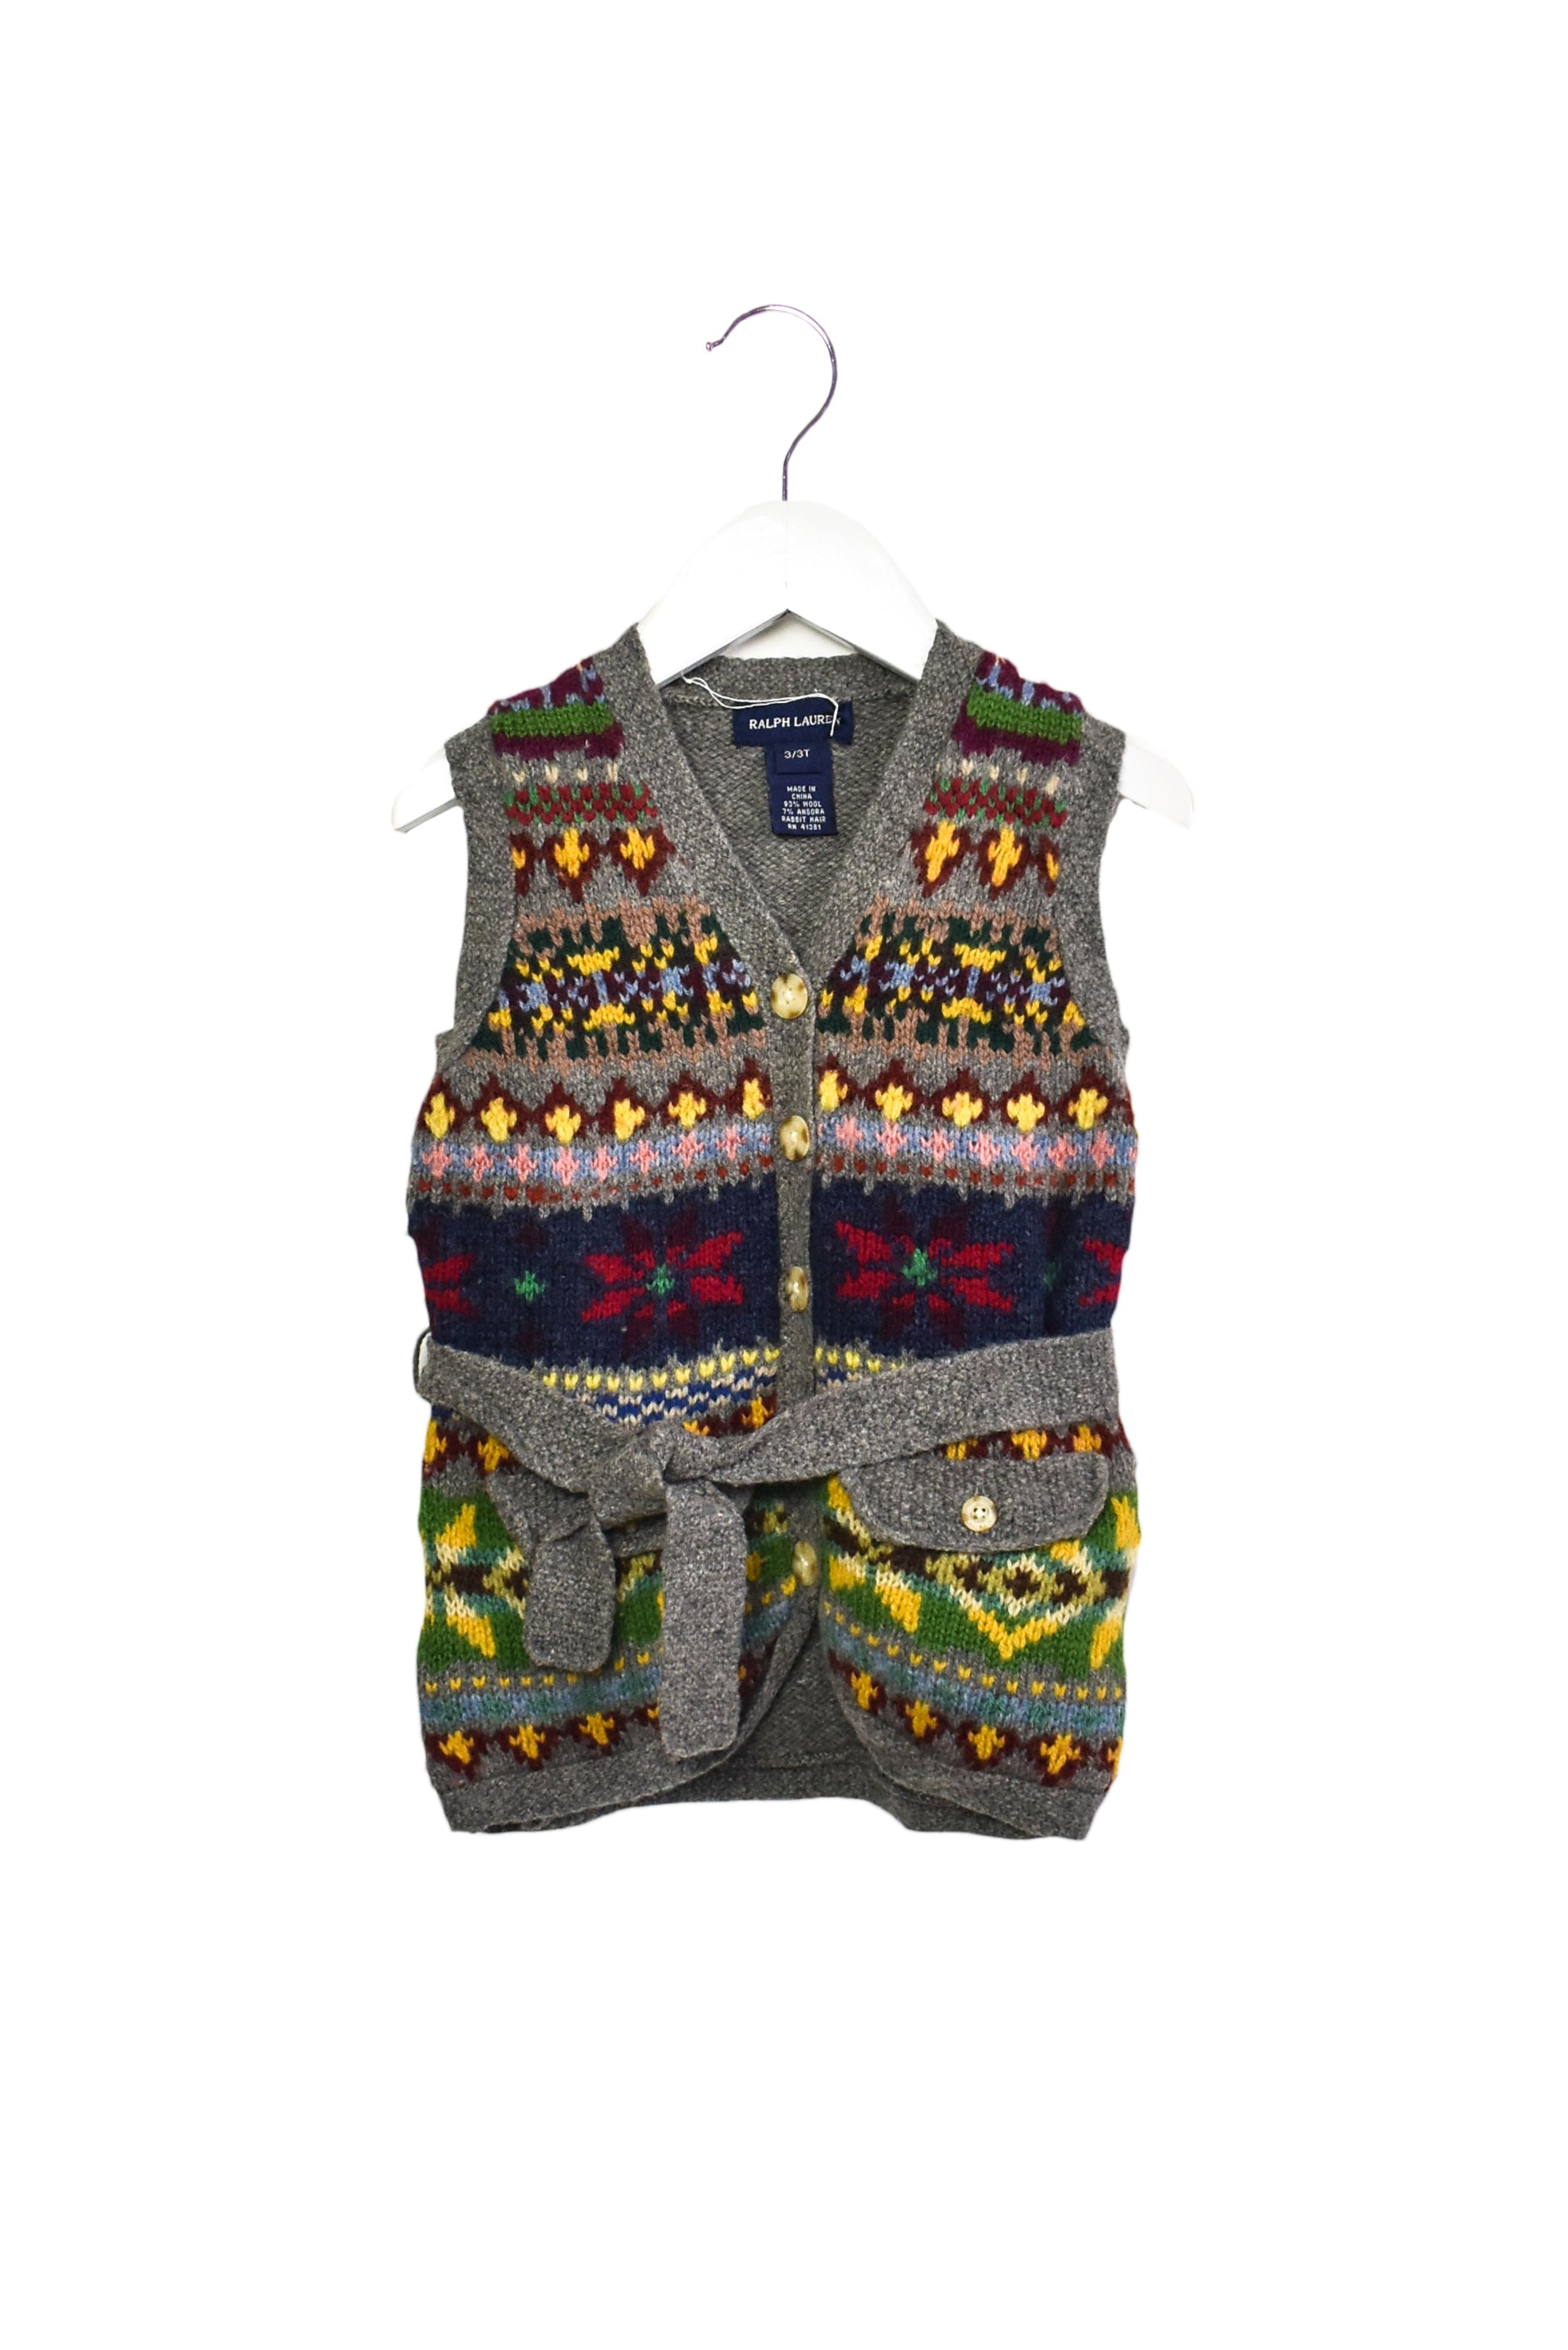 10013759 Ralph Lauren Baby ~ Knitted Vest 2T at Retykle